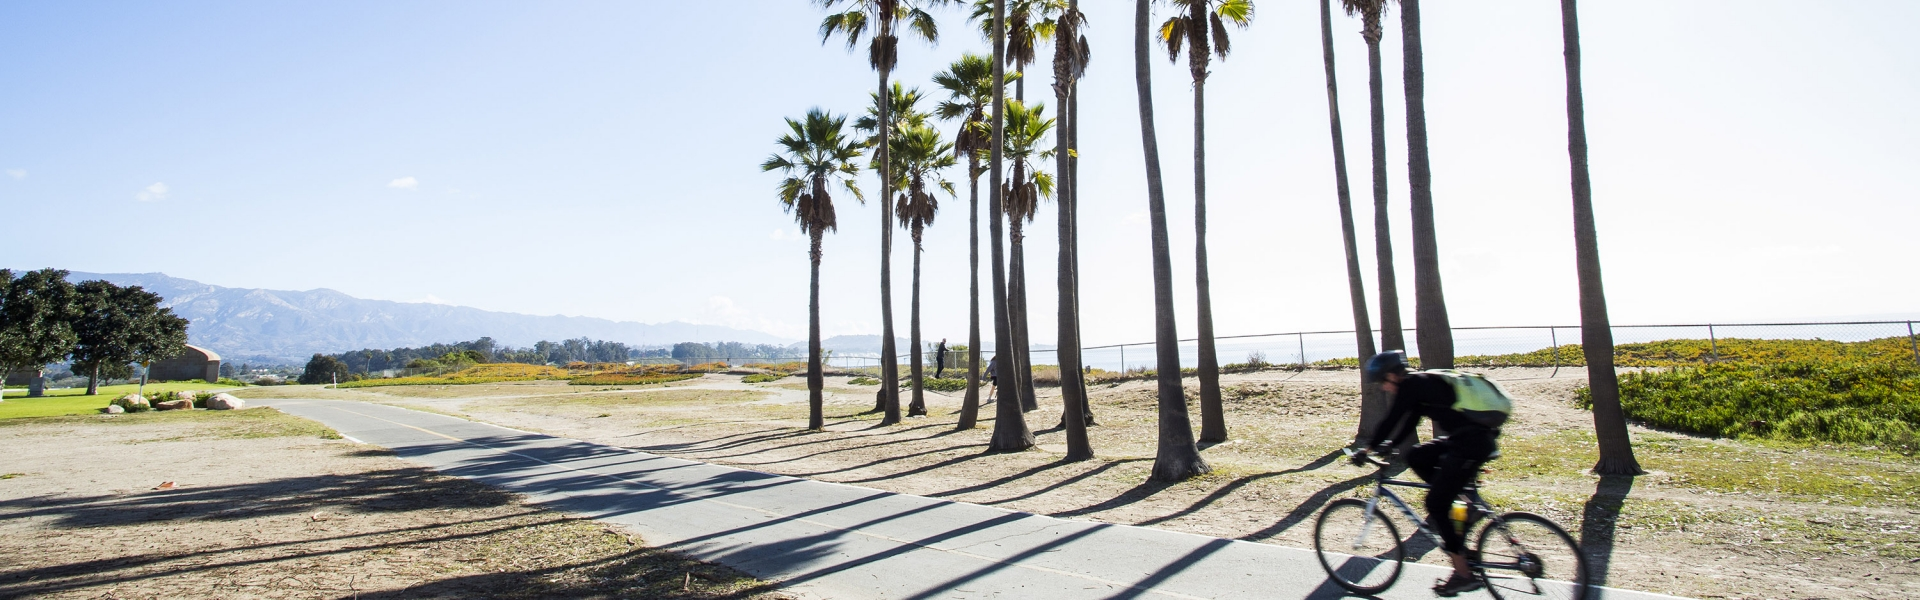 Bicyclist on path by palm trees